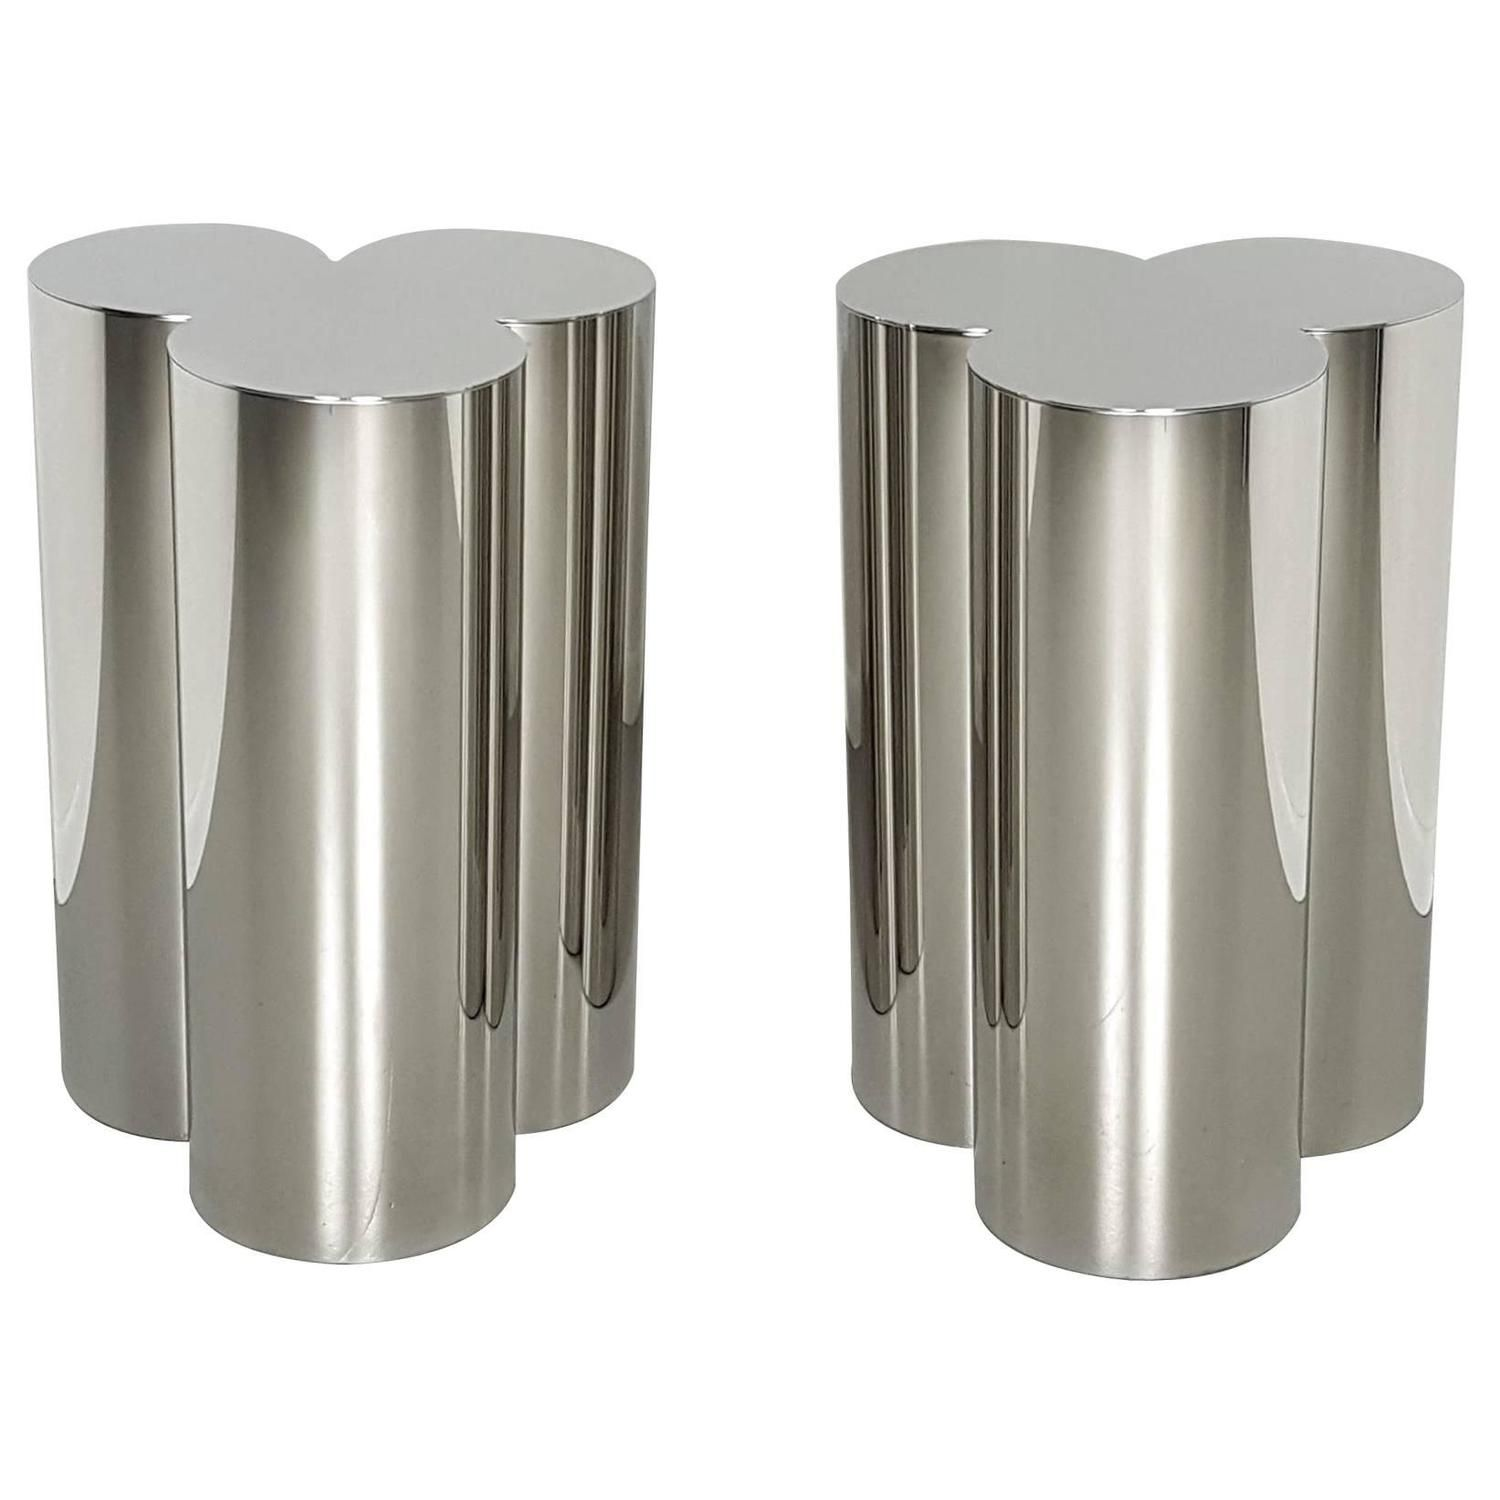 Custom Trefoil Dining Table Pedestal Bases In Mirror Polished